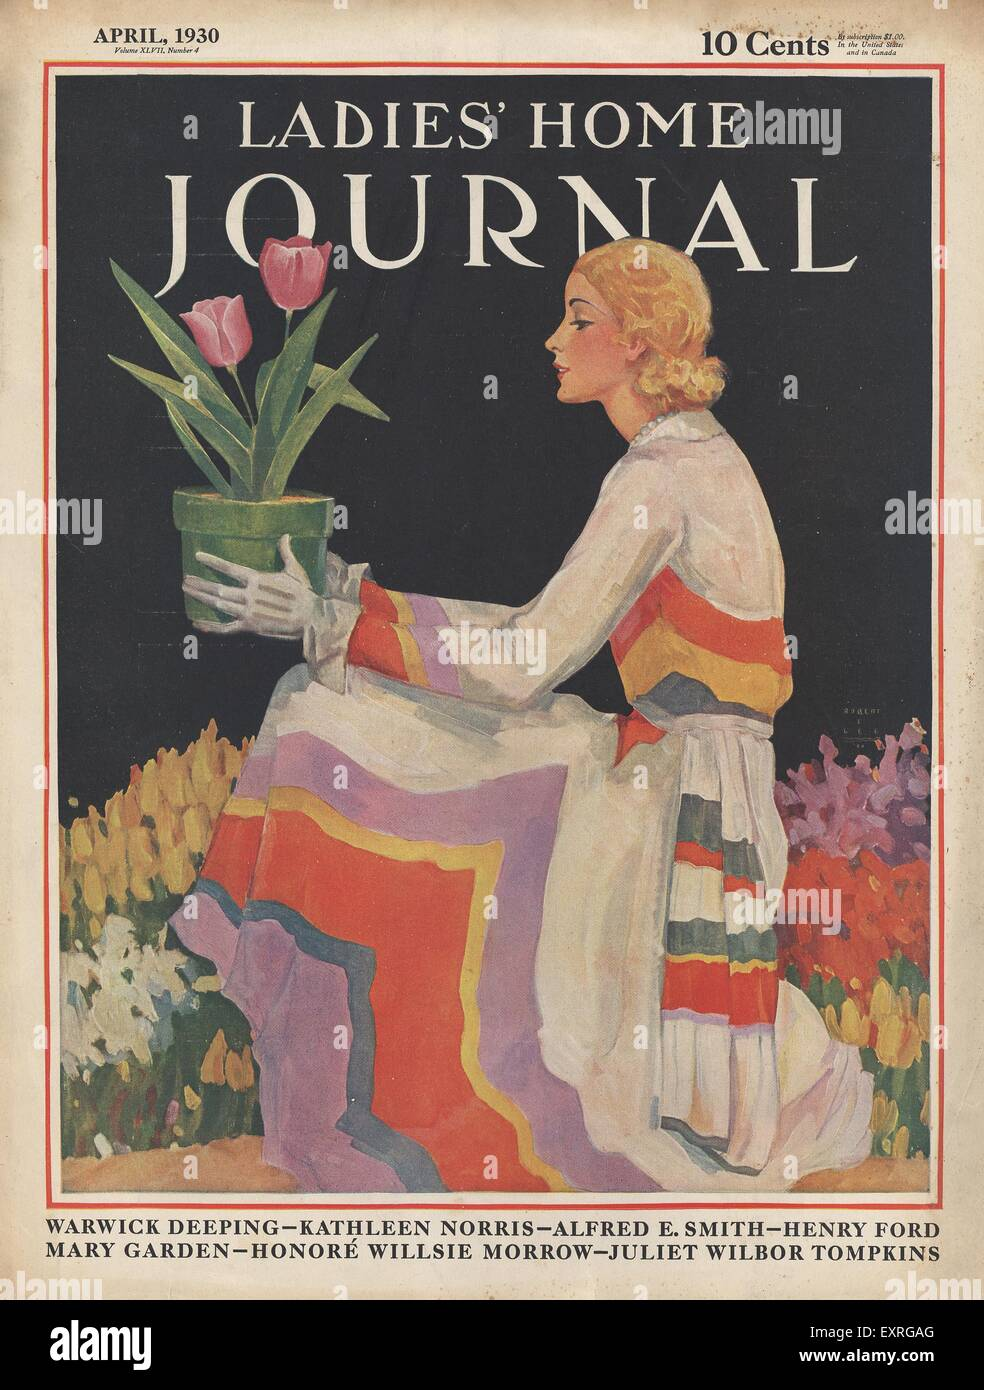 Home Magazines Usa 1930s usa ladies' home journal magazine cover stock photo, royalty